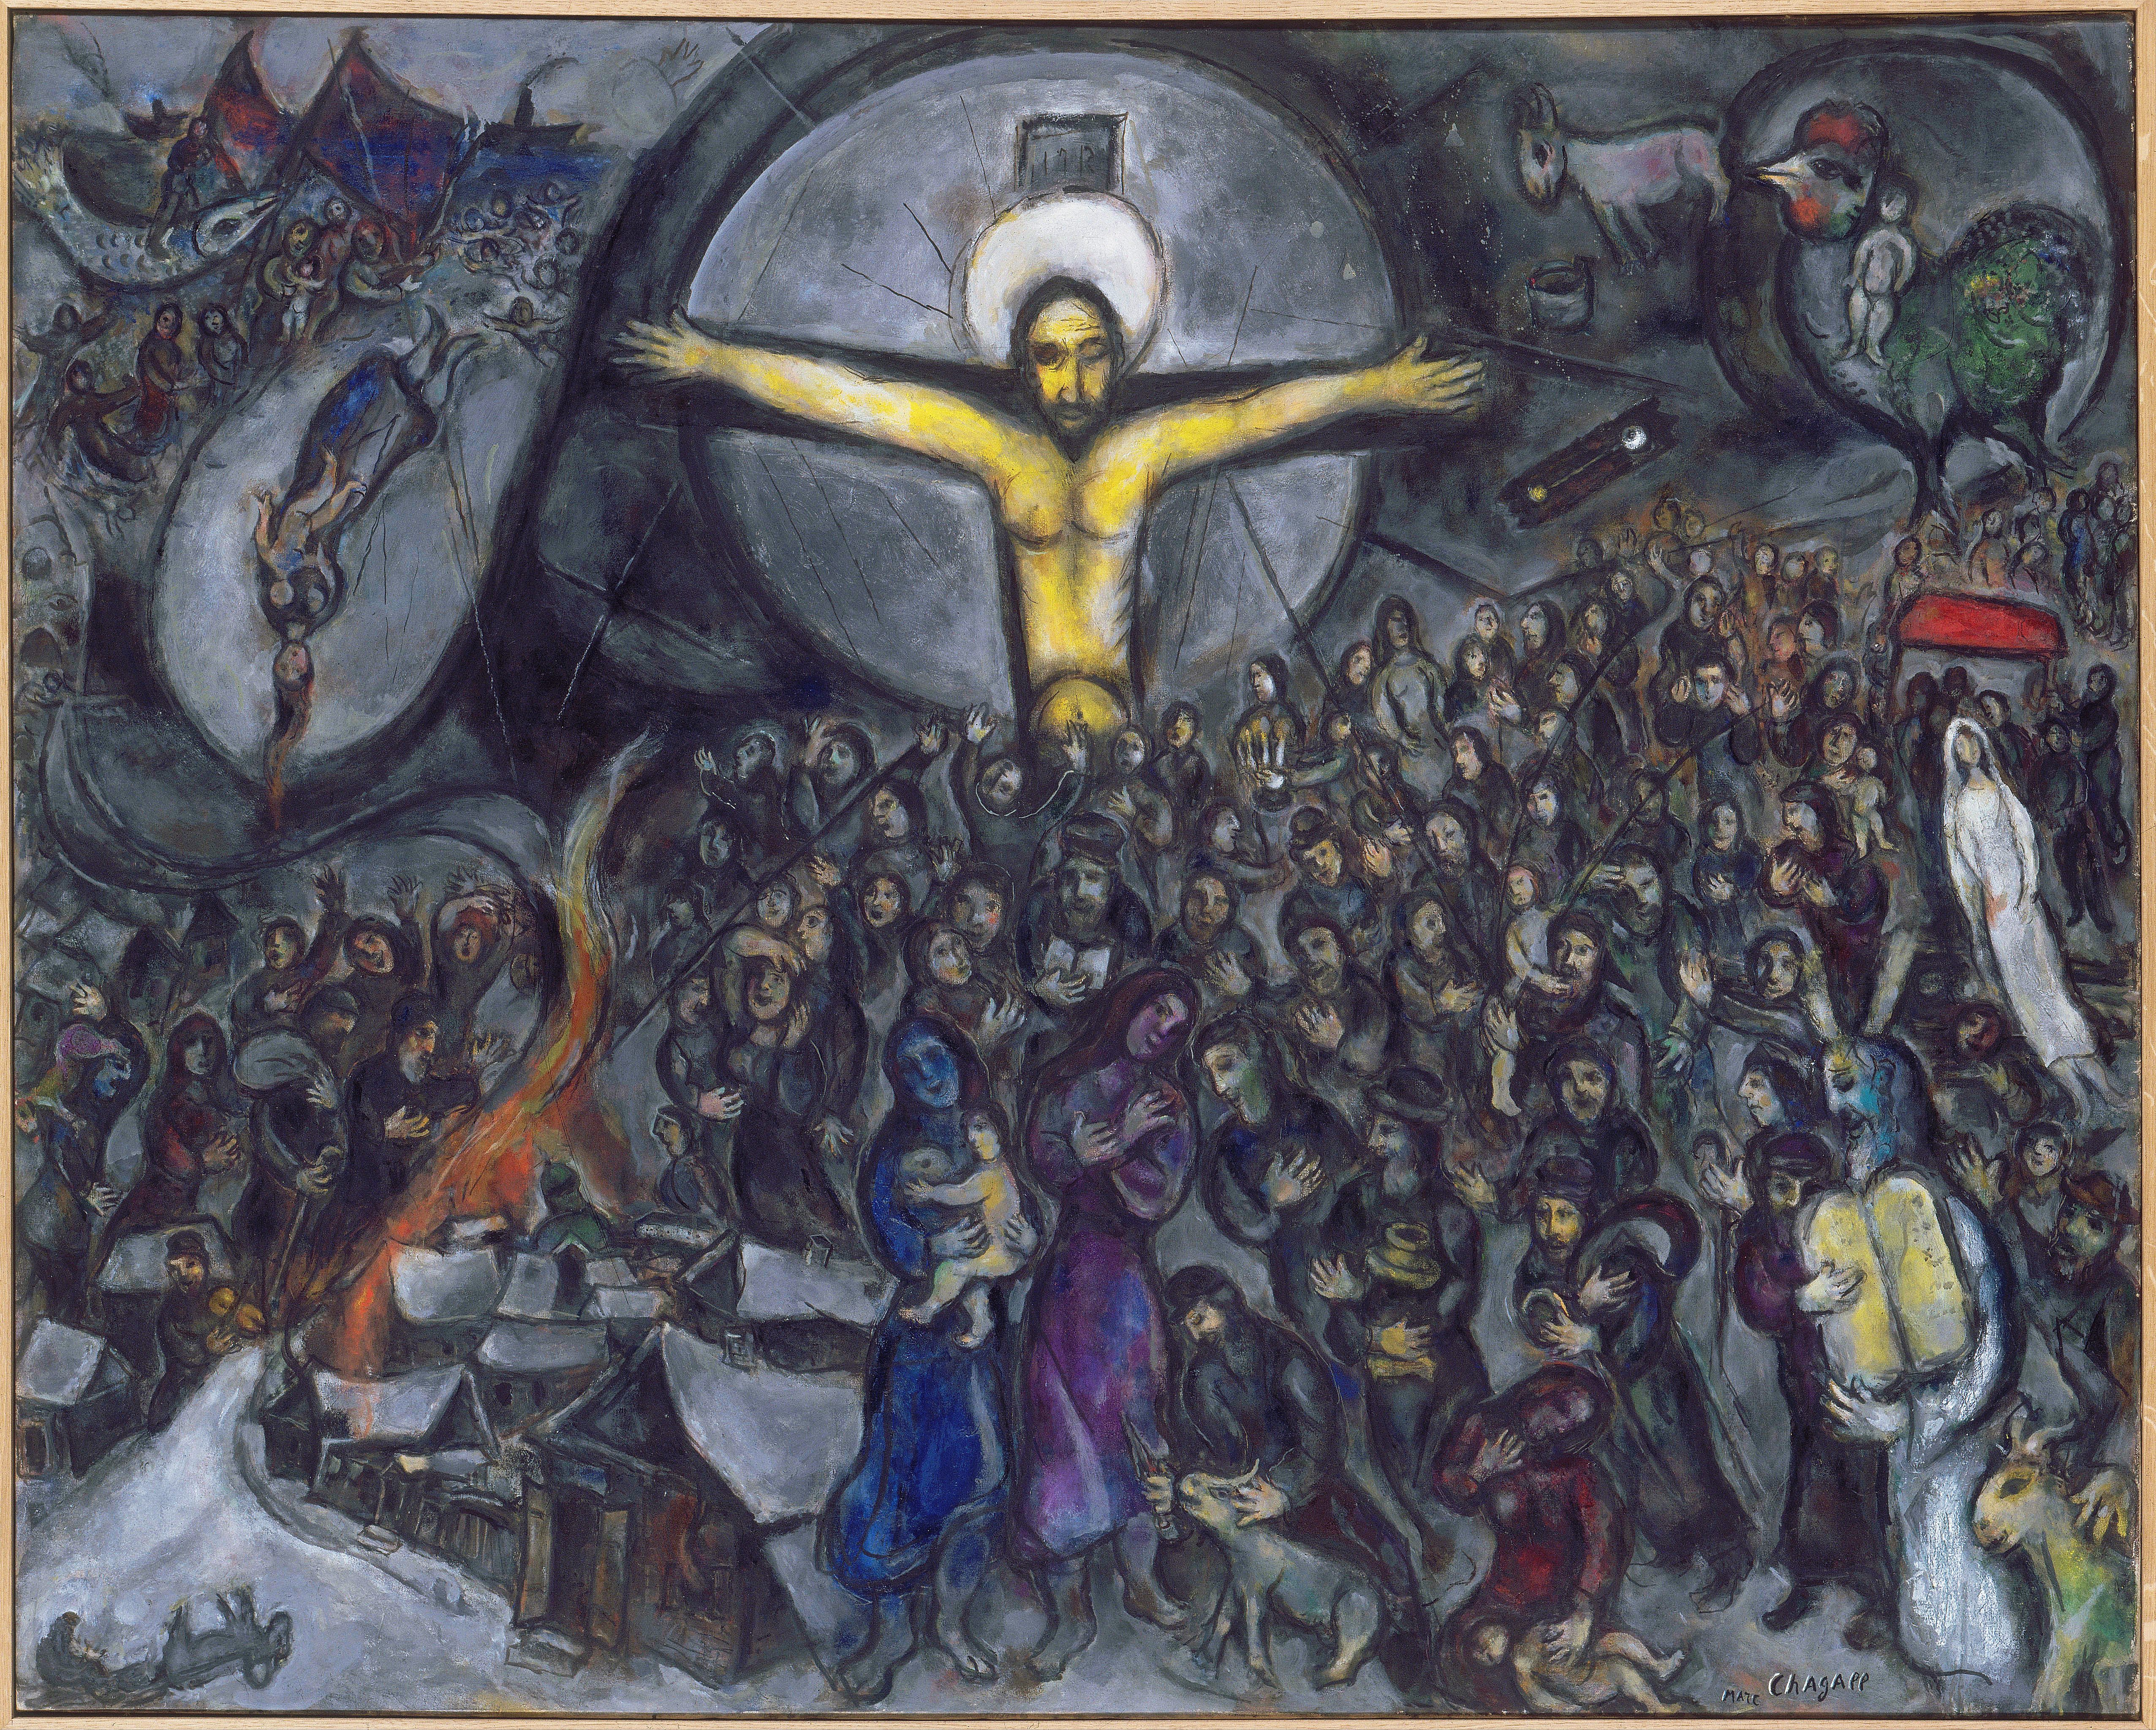 The Jewish Museum In New York Is Presenting Chagall Love War And Exile Through February 2 2014 Exhibition Focuses On Art Of Marc